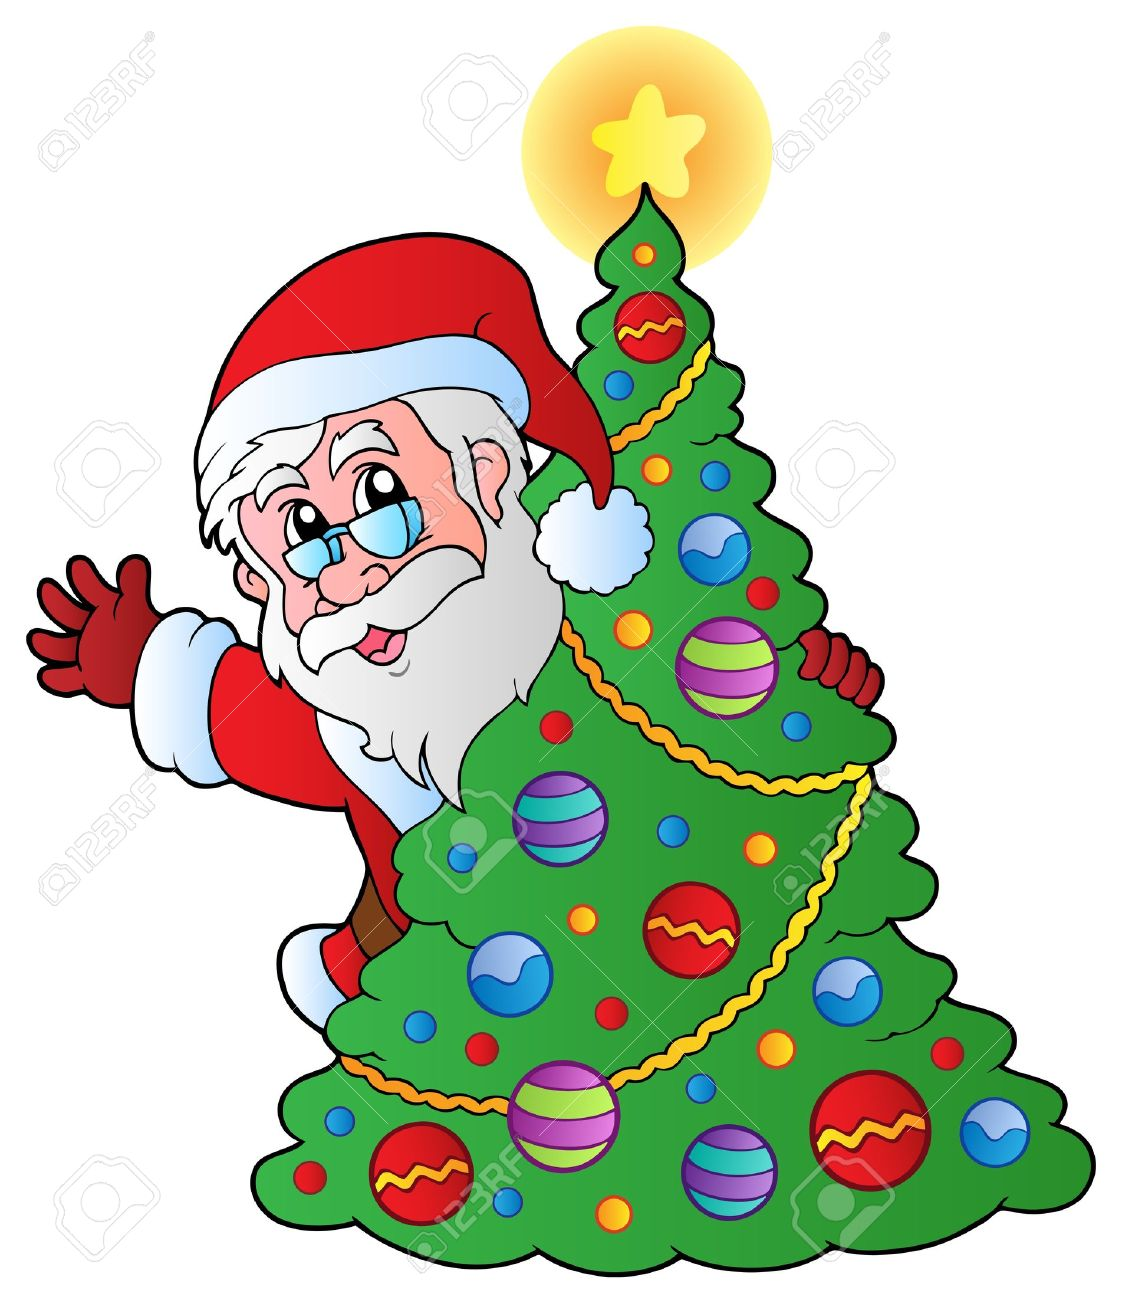 1122x1300 Santa With Christmas Tree December Clipart, Explore Pictures